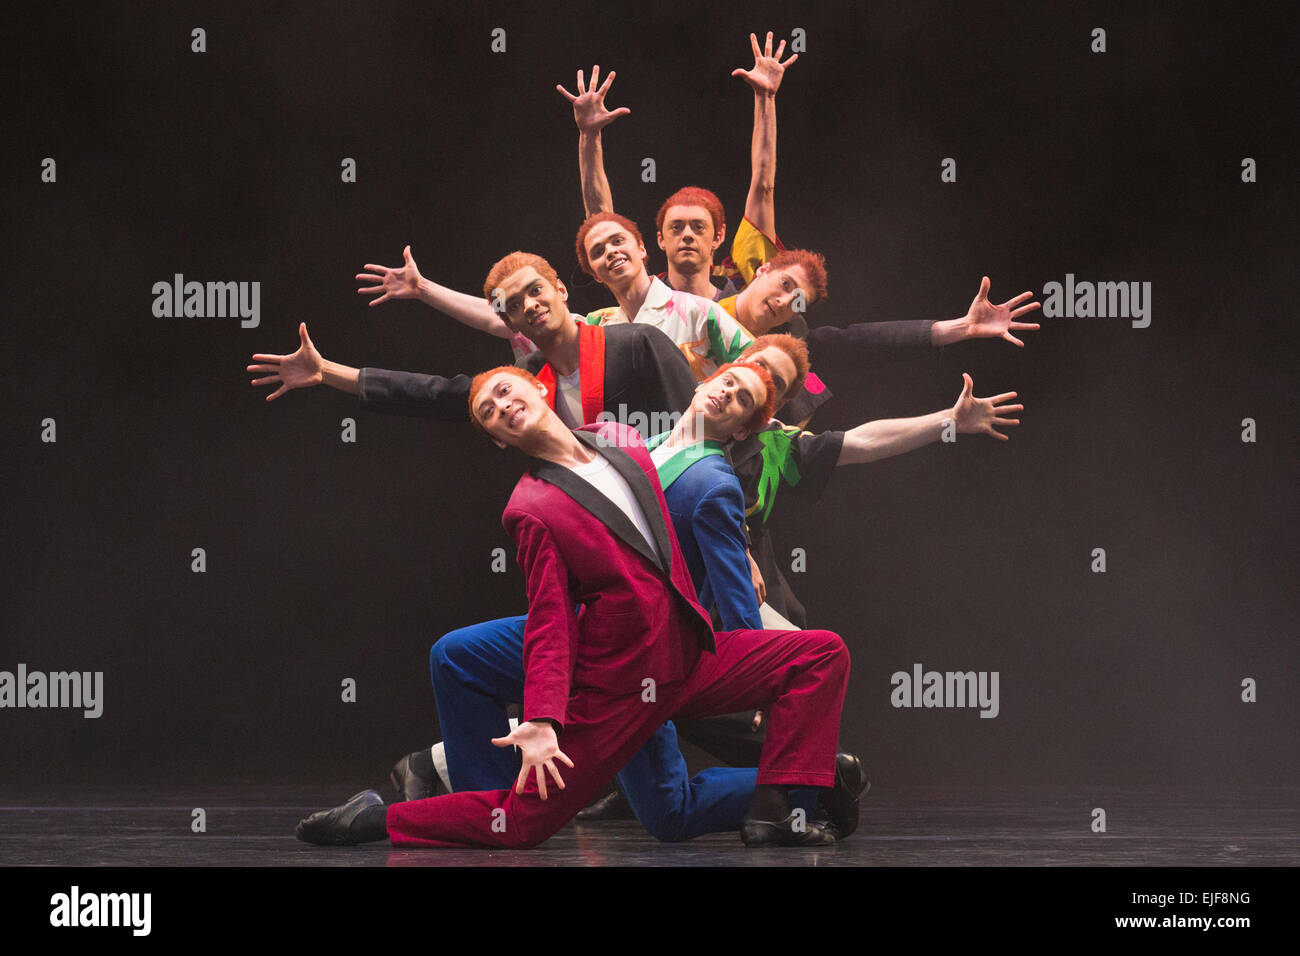 Pictured: Dress rehearsal of Carmina burana, music by Carl Orff with choreography by David Bintley. Section: On - Stock Image